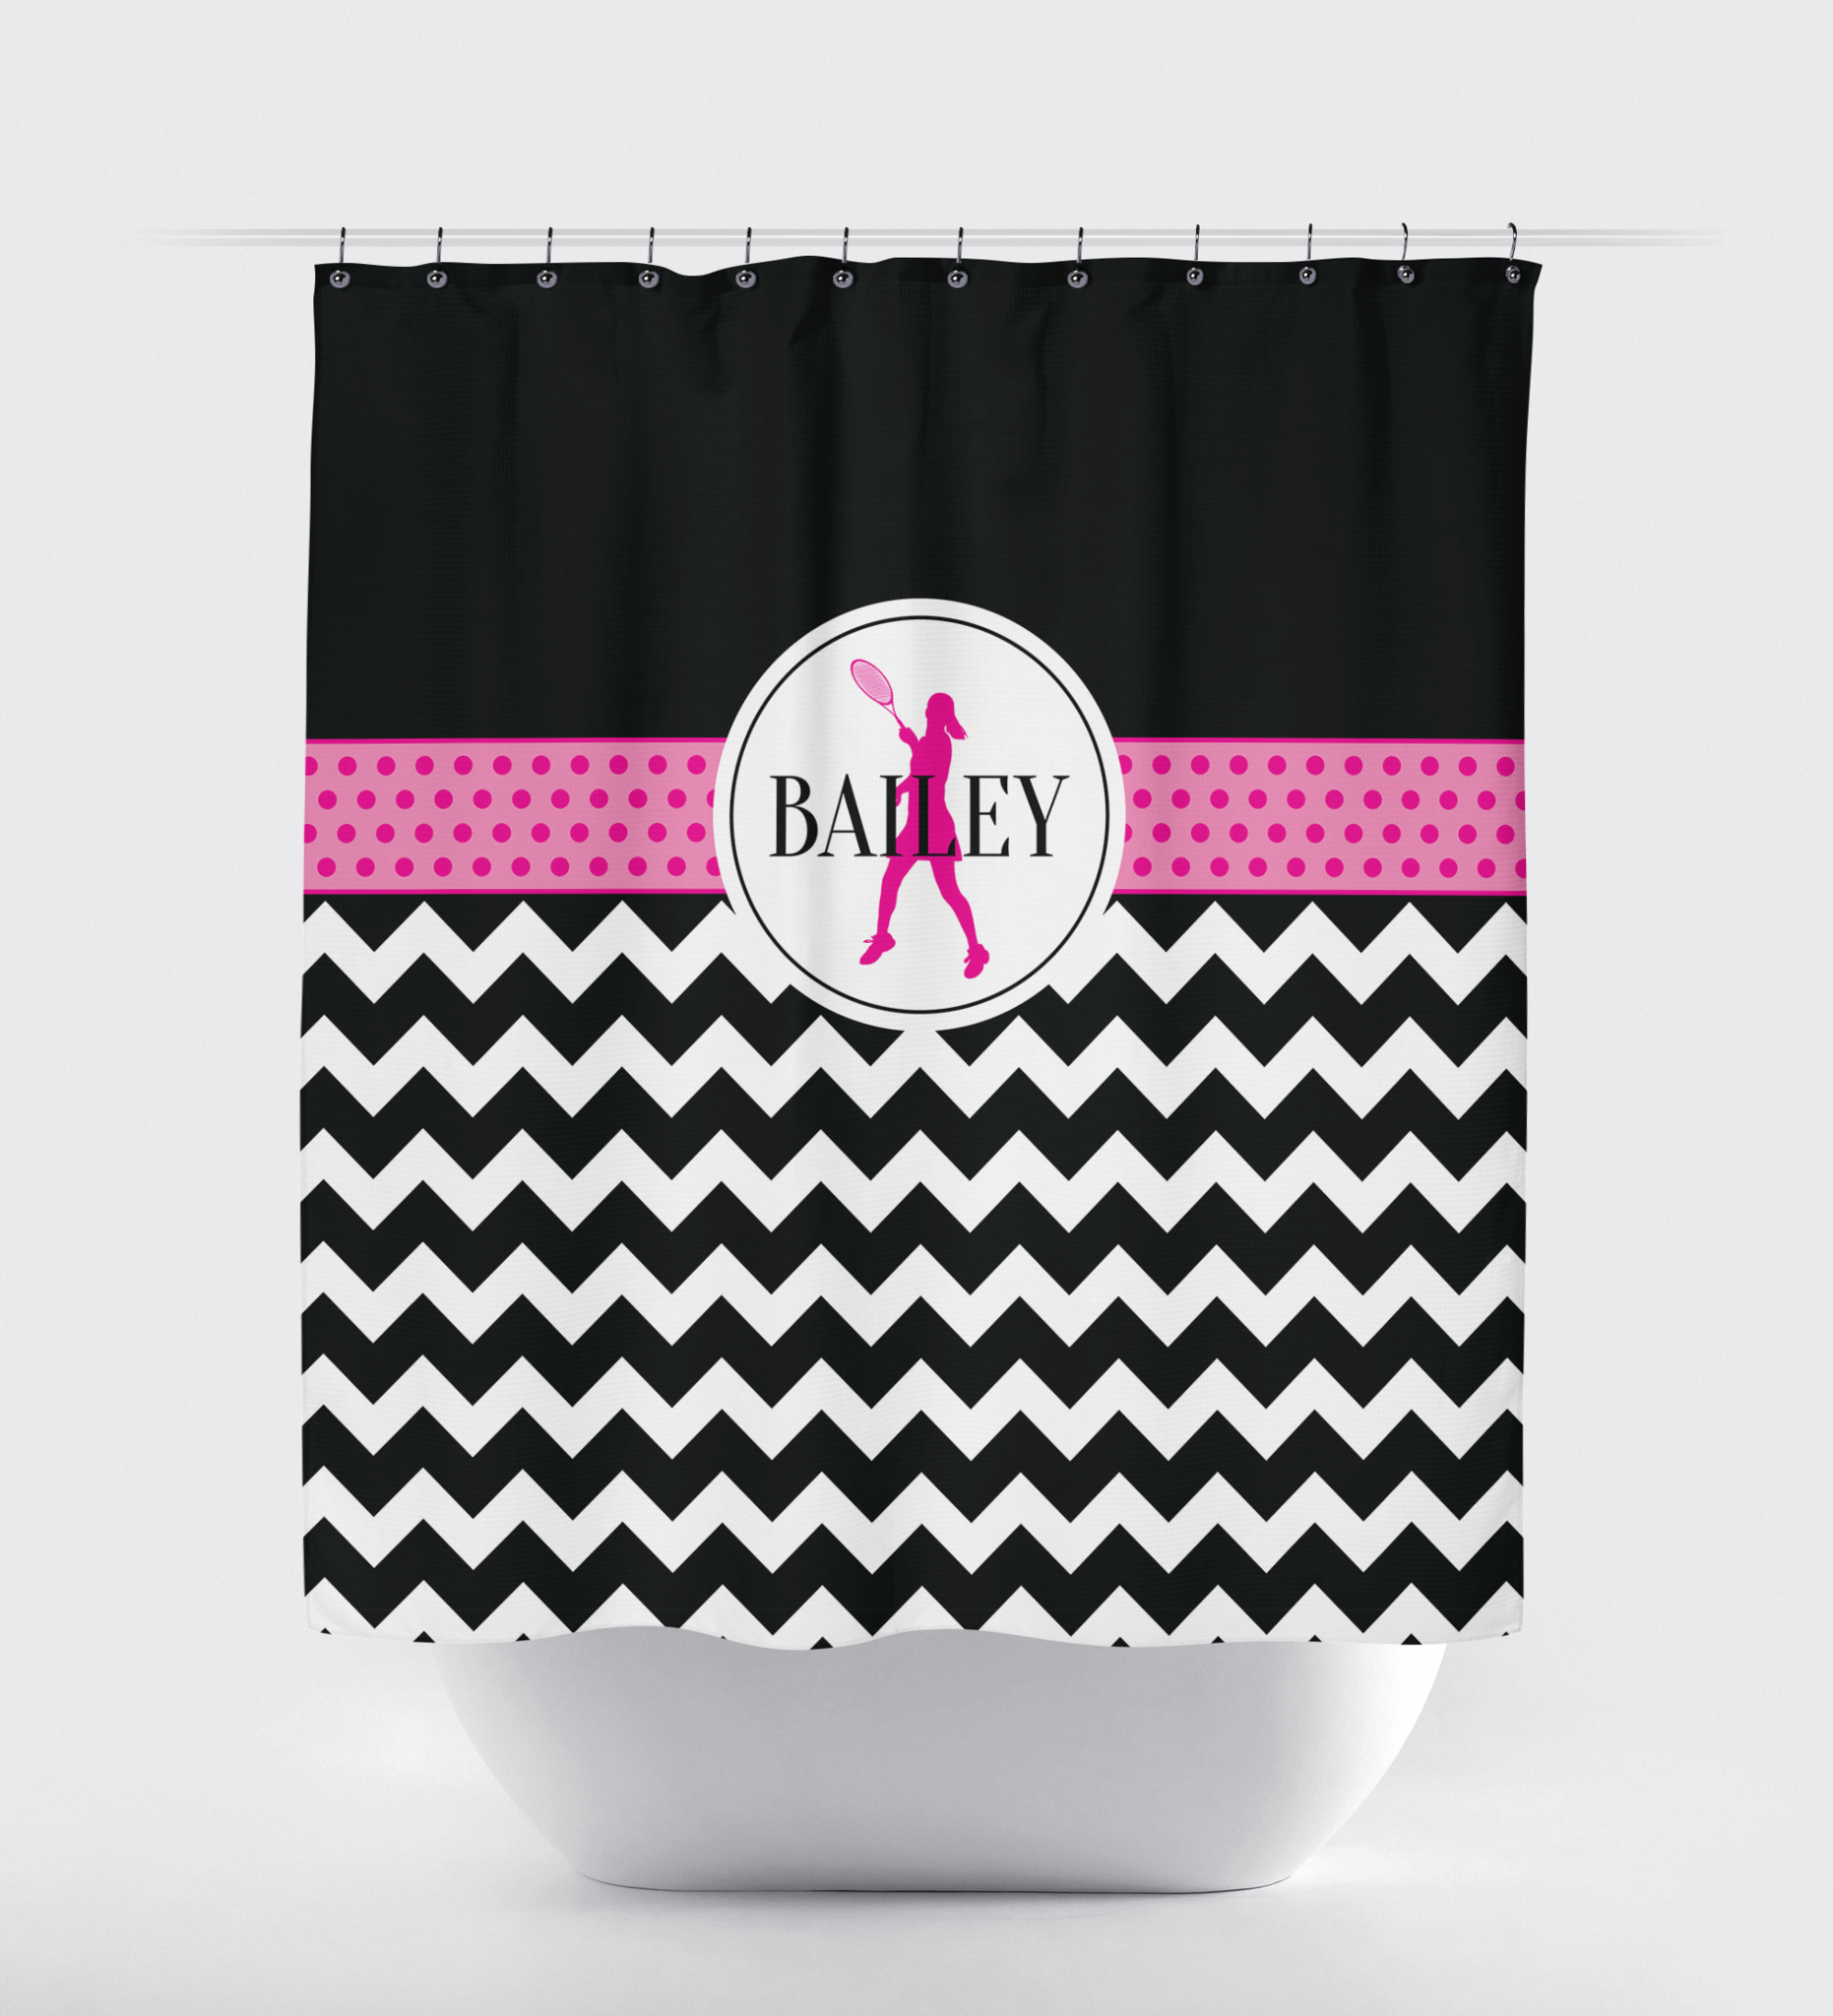 Custom Tennis Shower Curtain   Chevron And Polka Dots   Tennis Player Gift  For Girls ...